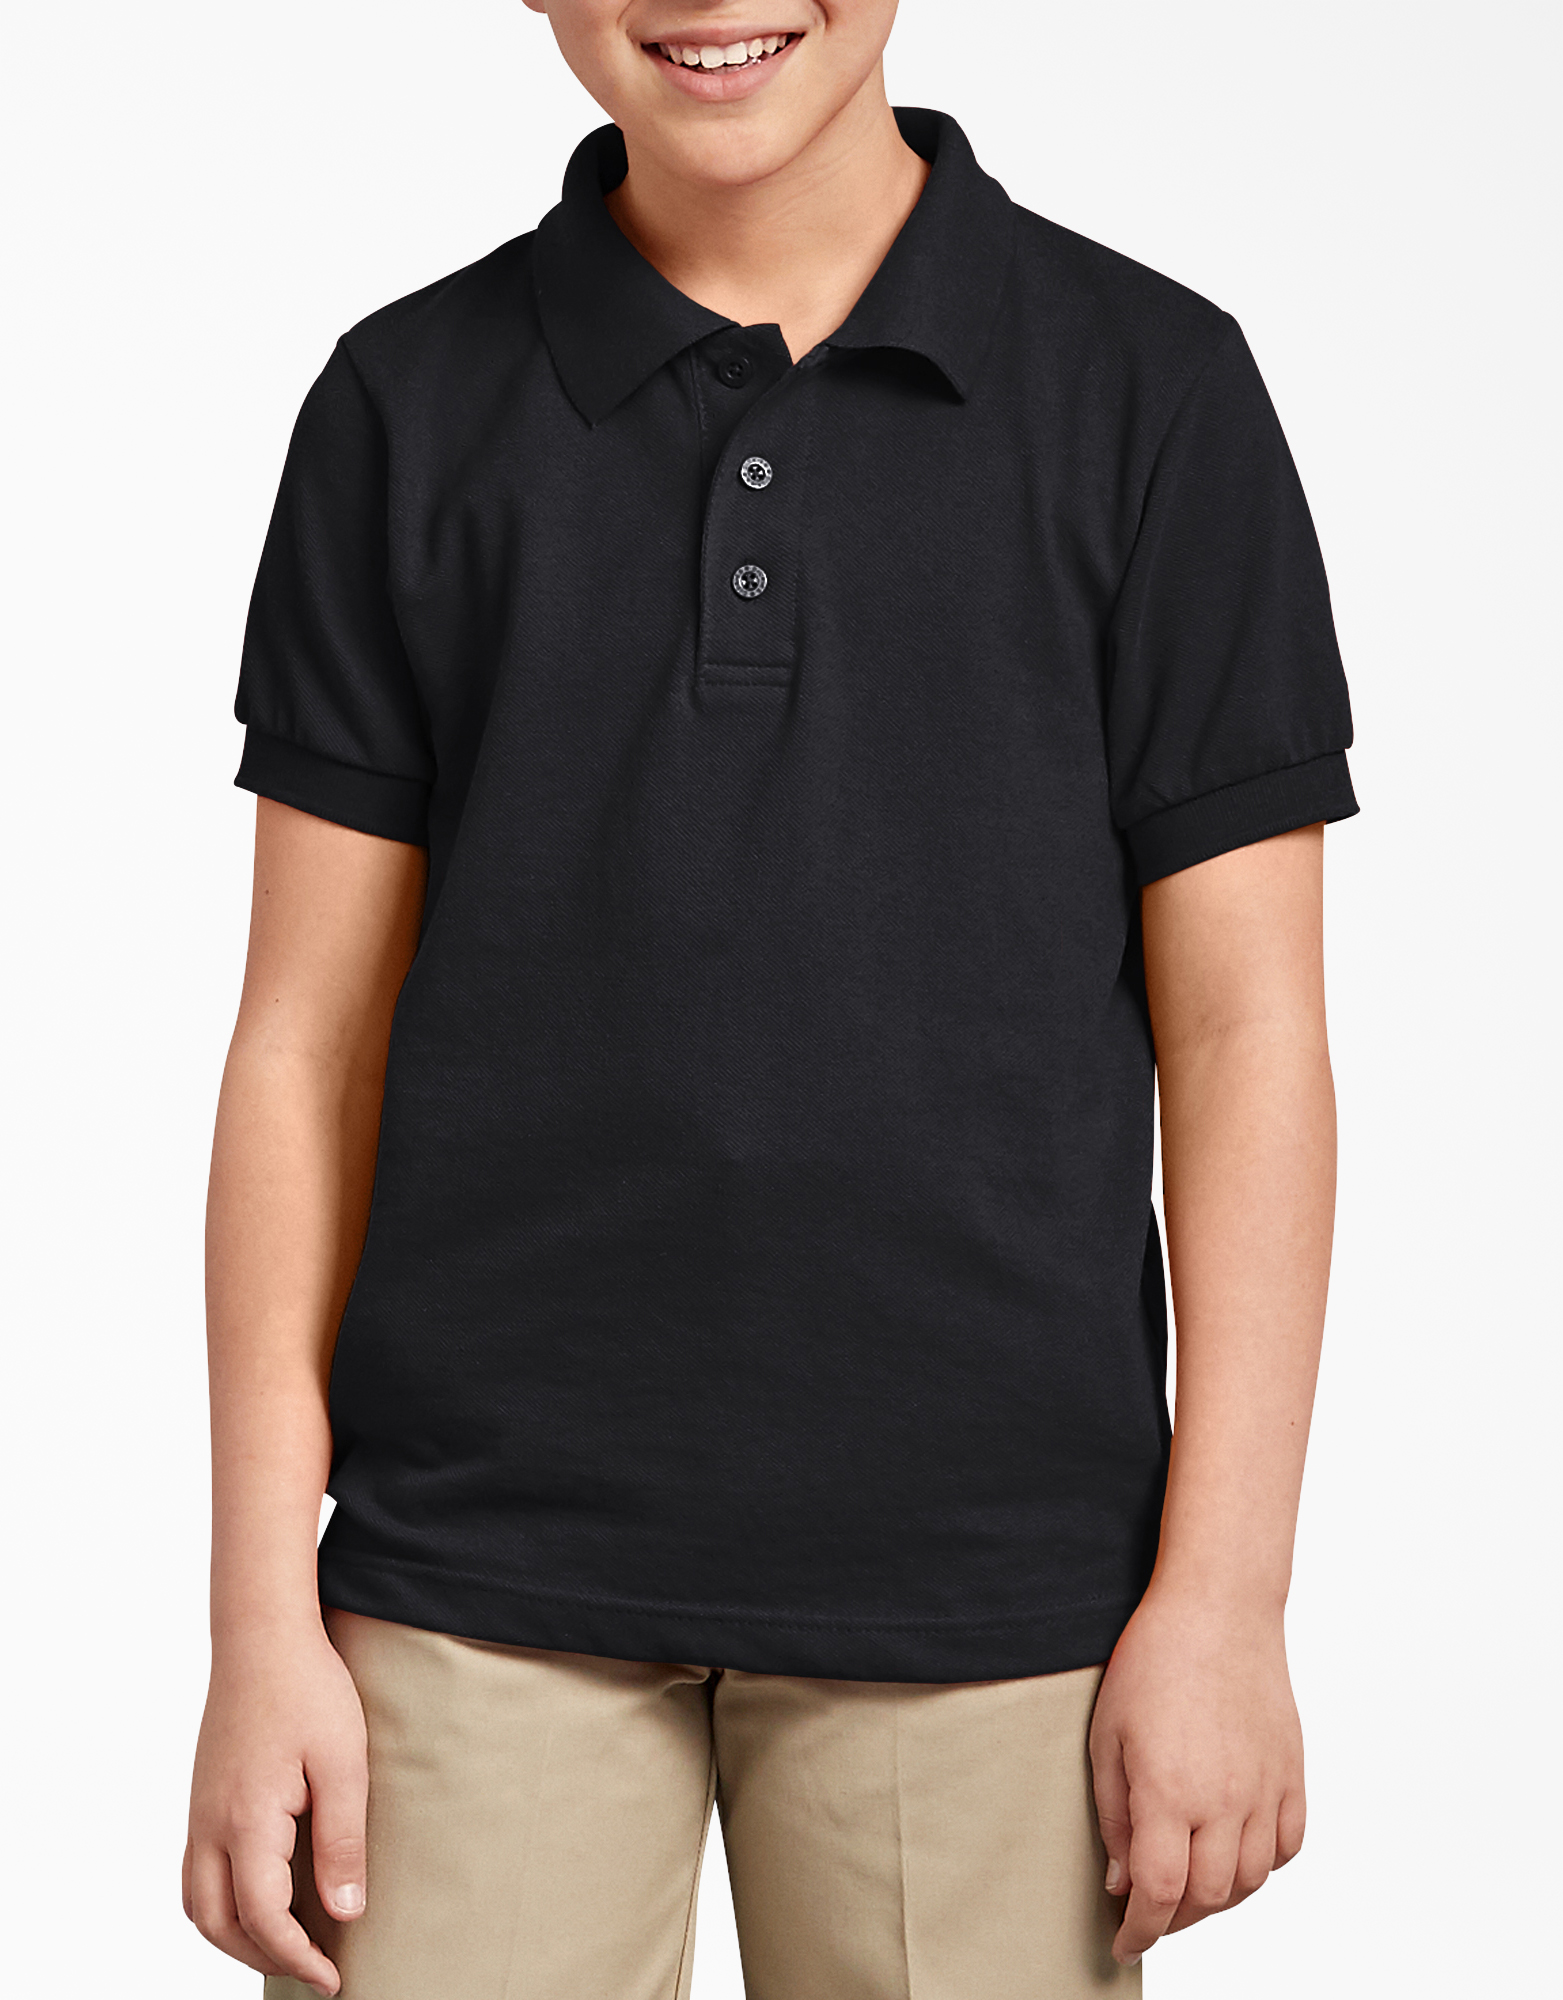 Kids' Short Sleeve Pique Polo Shirt, 4-20 - Black (BK)